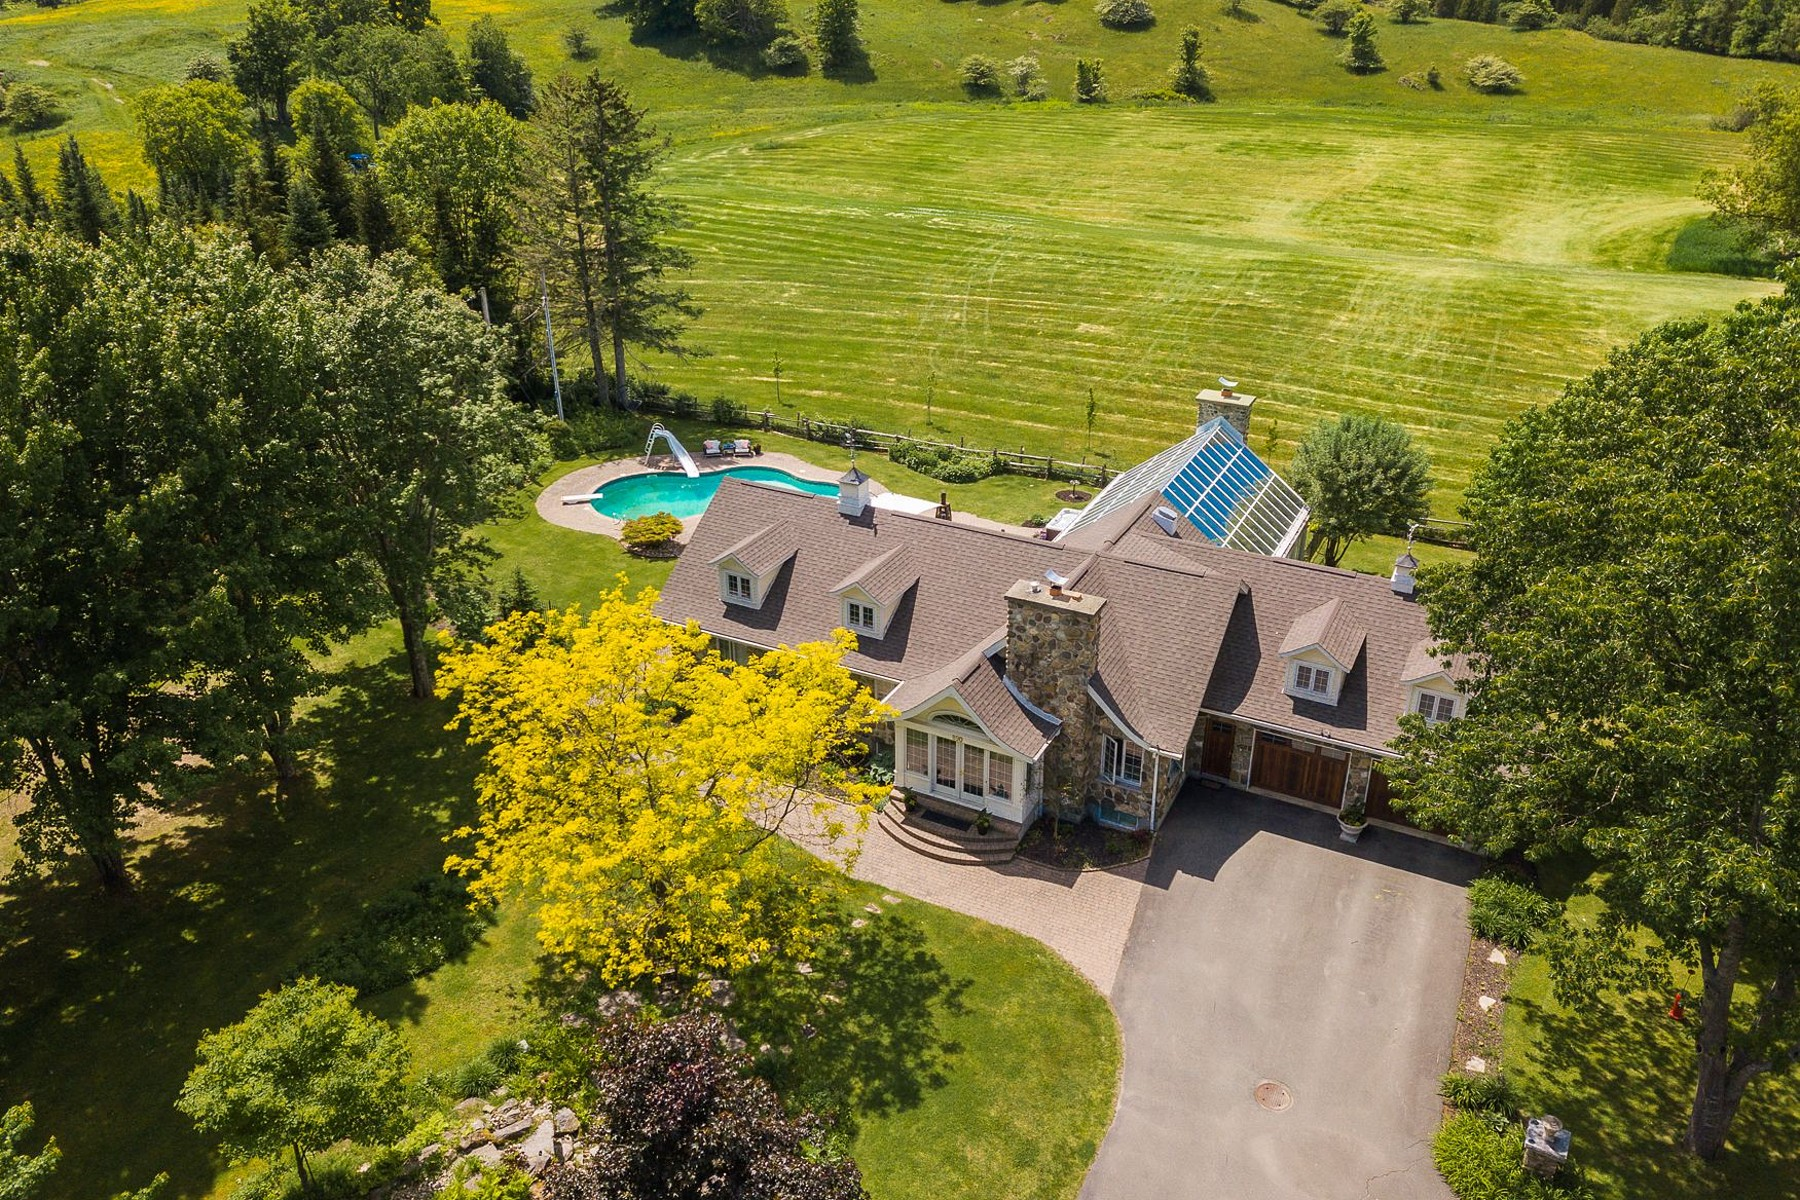 Single Family Homes for Sale at Ayer's Cliff, Estrie 890 Rue Vanasse Ayer's Cliff, Quebec J0B1C0 Canada